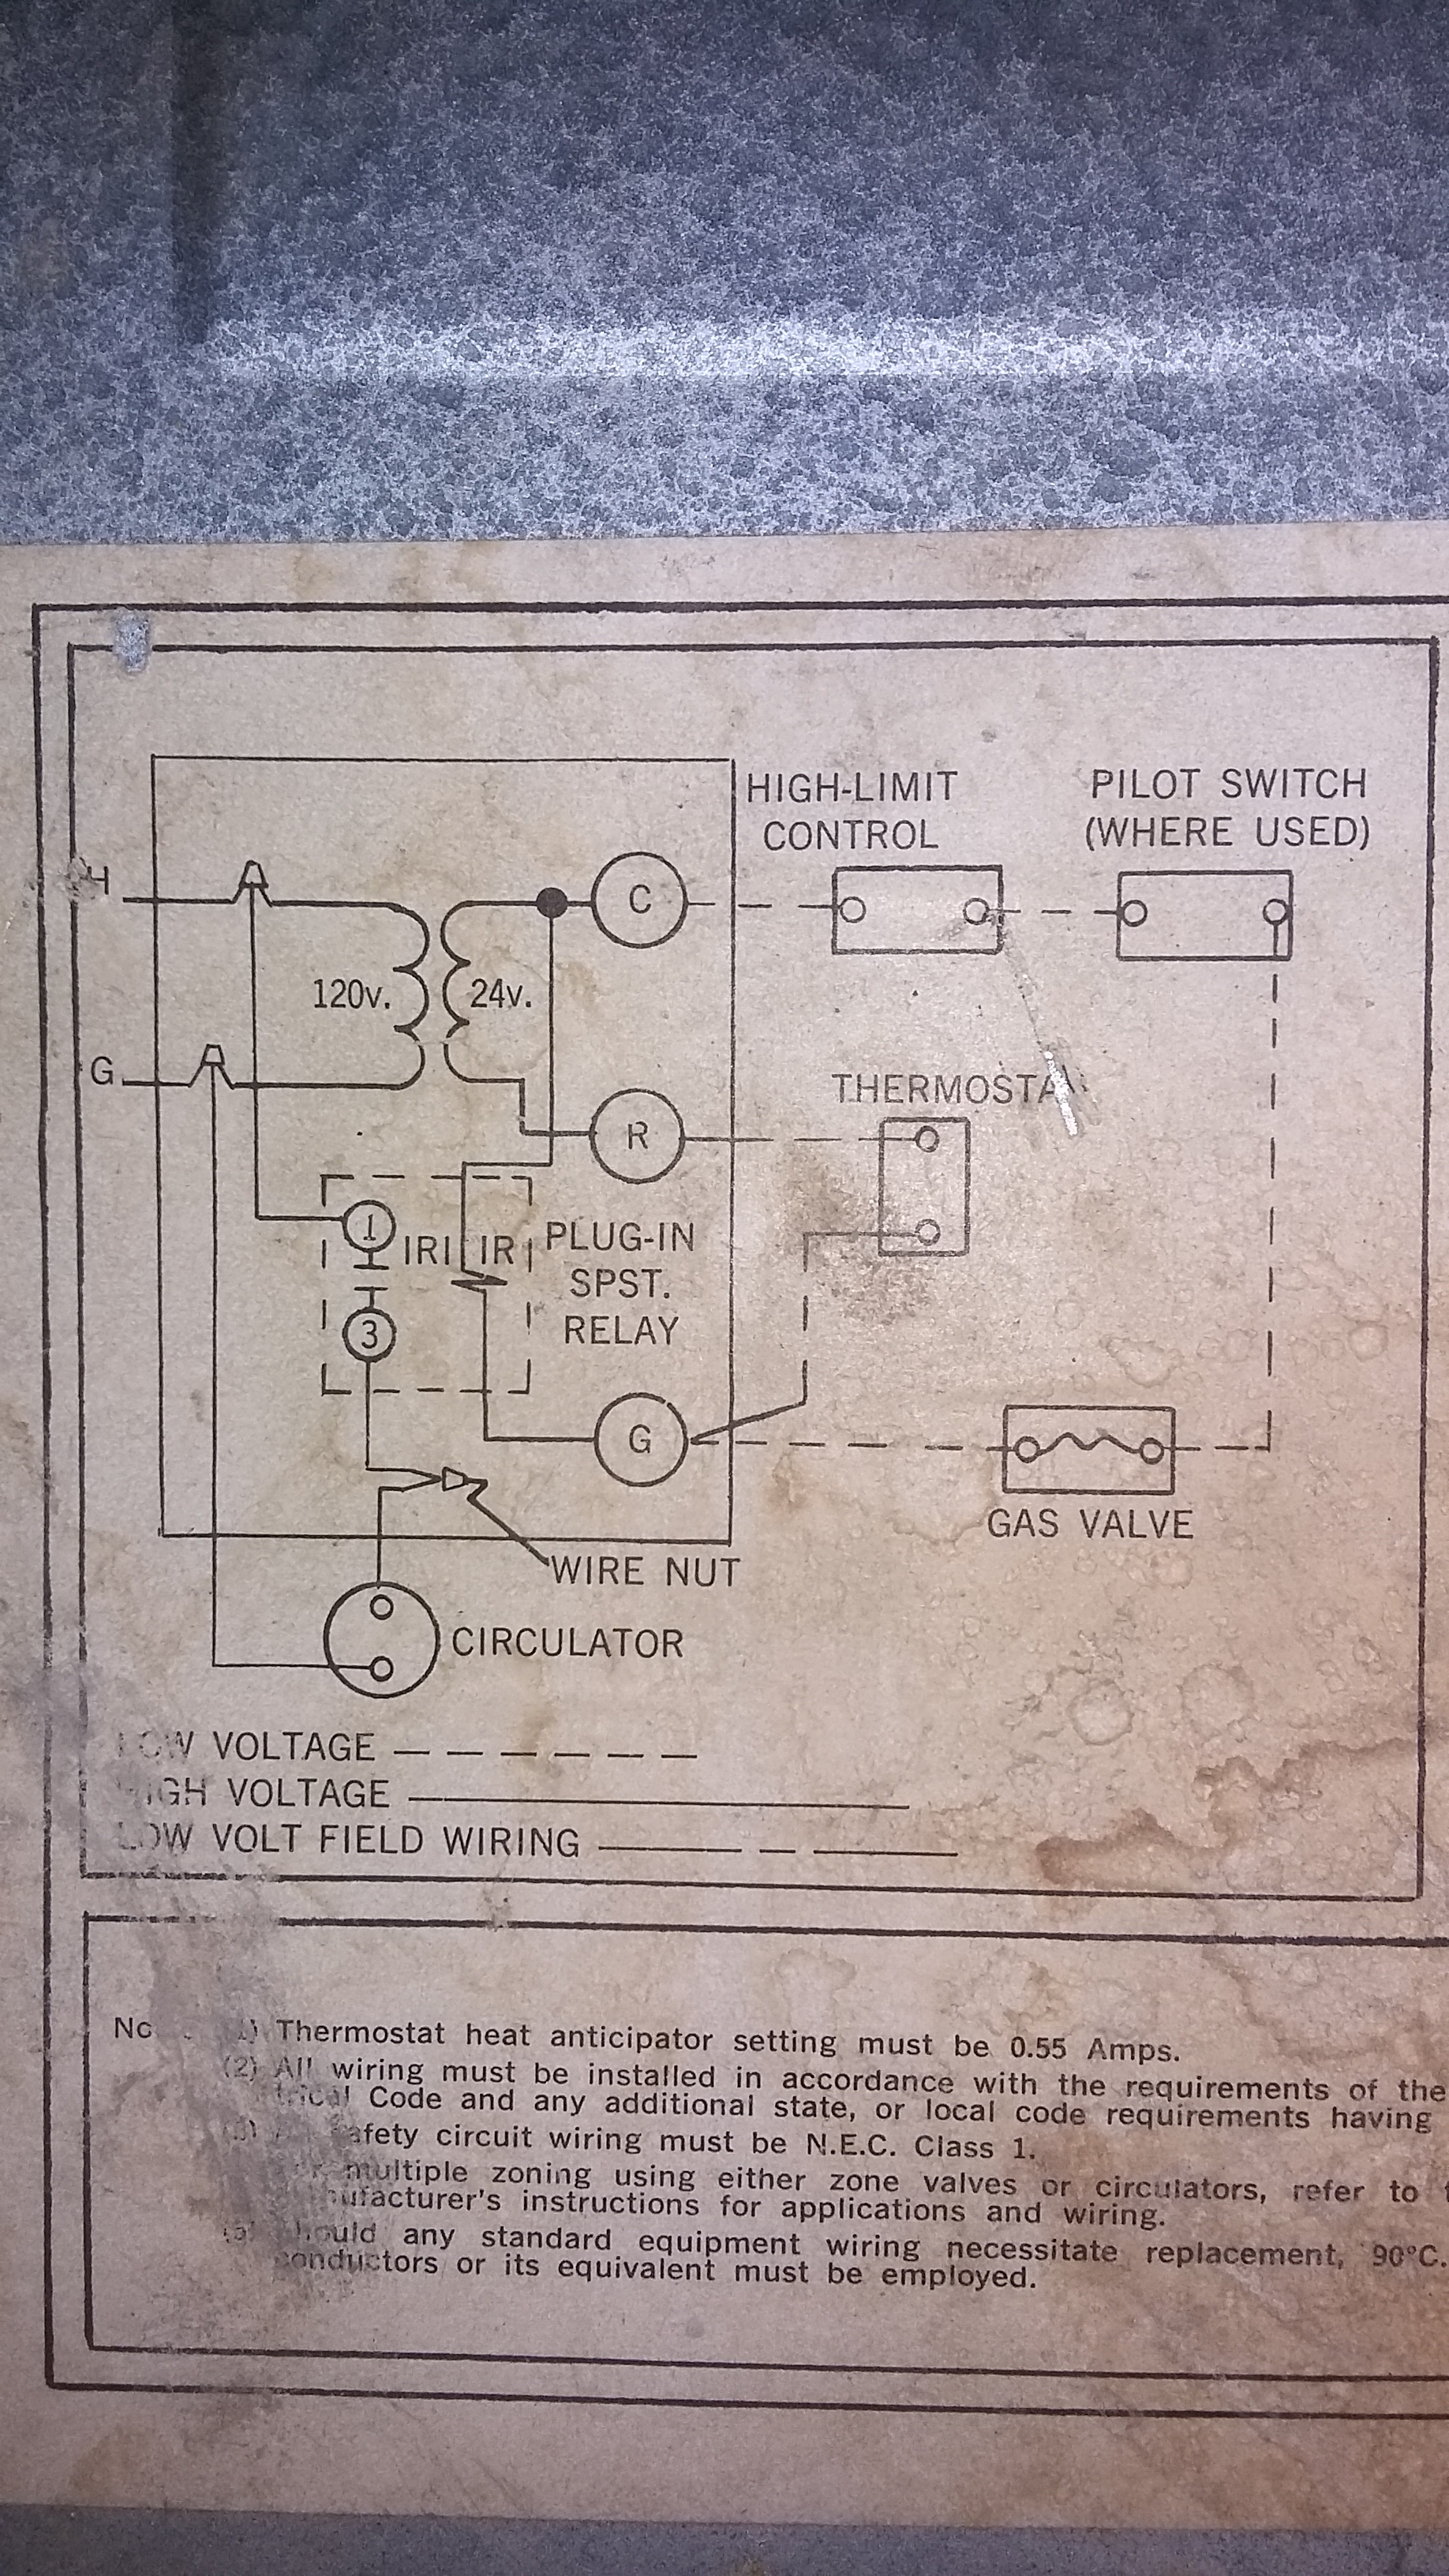 Taco Zvc404 4 Zone Limit And Gas Hook Up Heating Help The Wall Wiring Valve Circulator 1480192637677 52559553